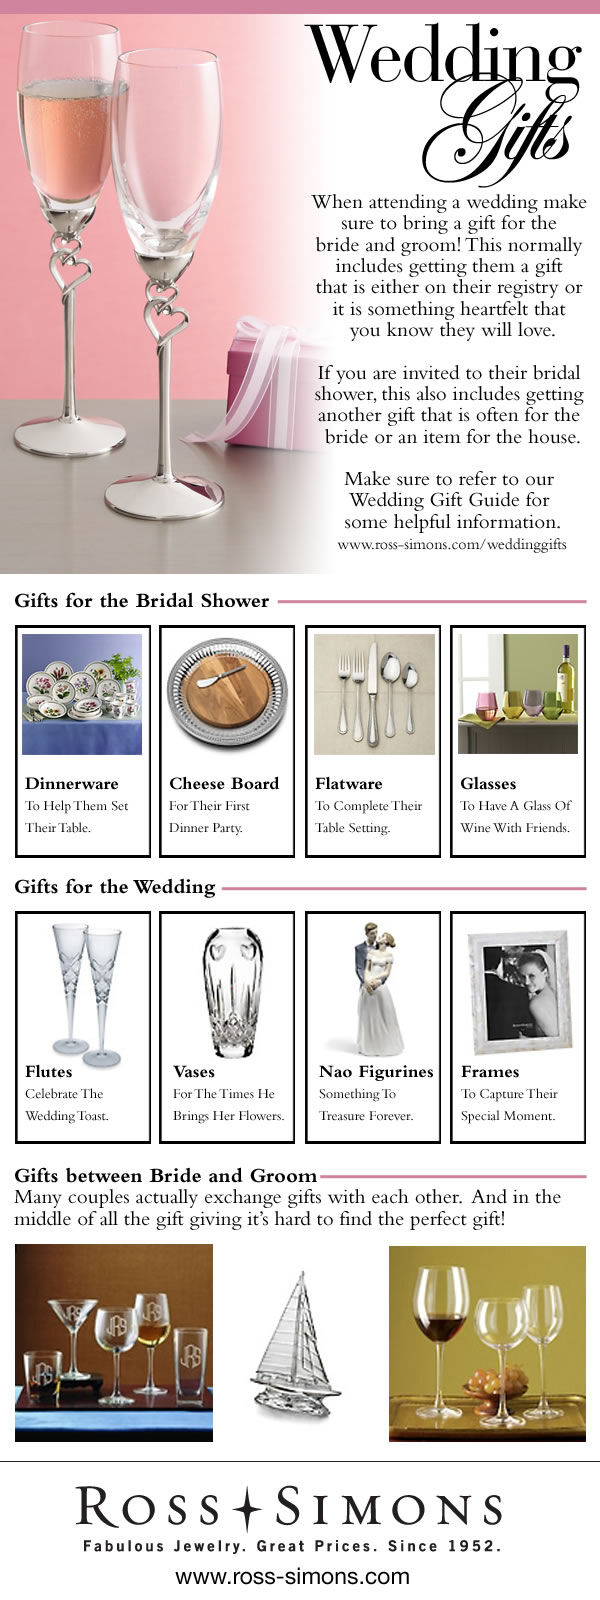 Wedding Gift Guide Infographic. Text for this infographic can be found below under 'Infographic Full-Text' headline.